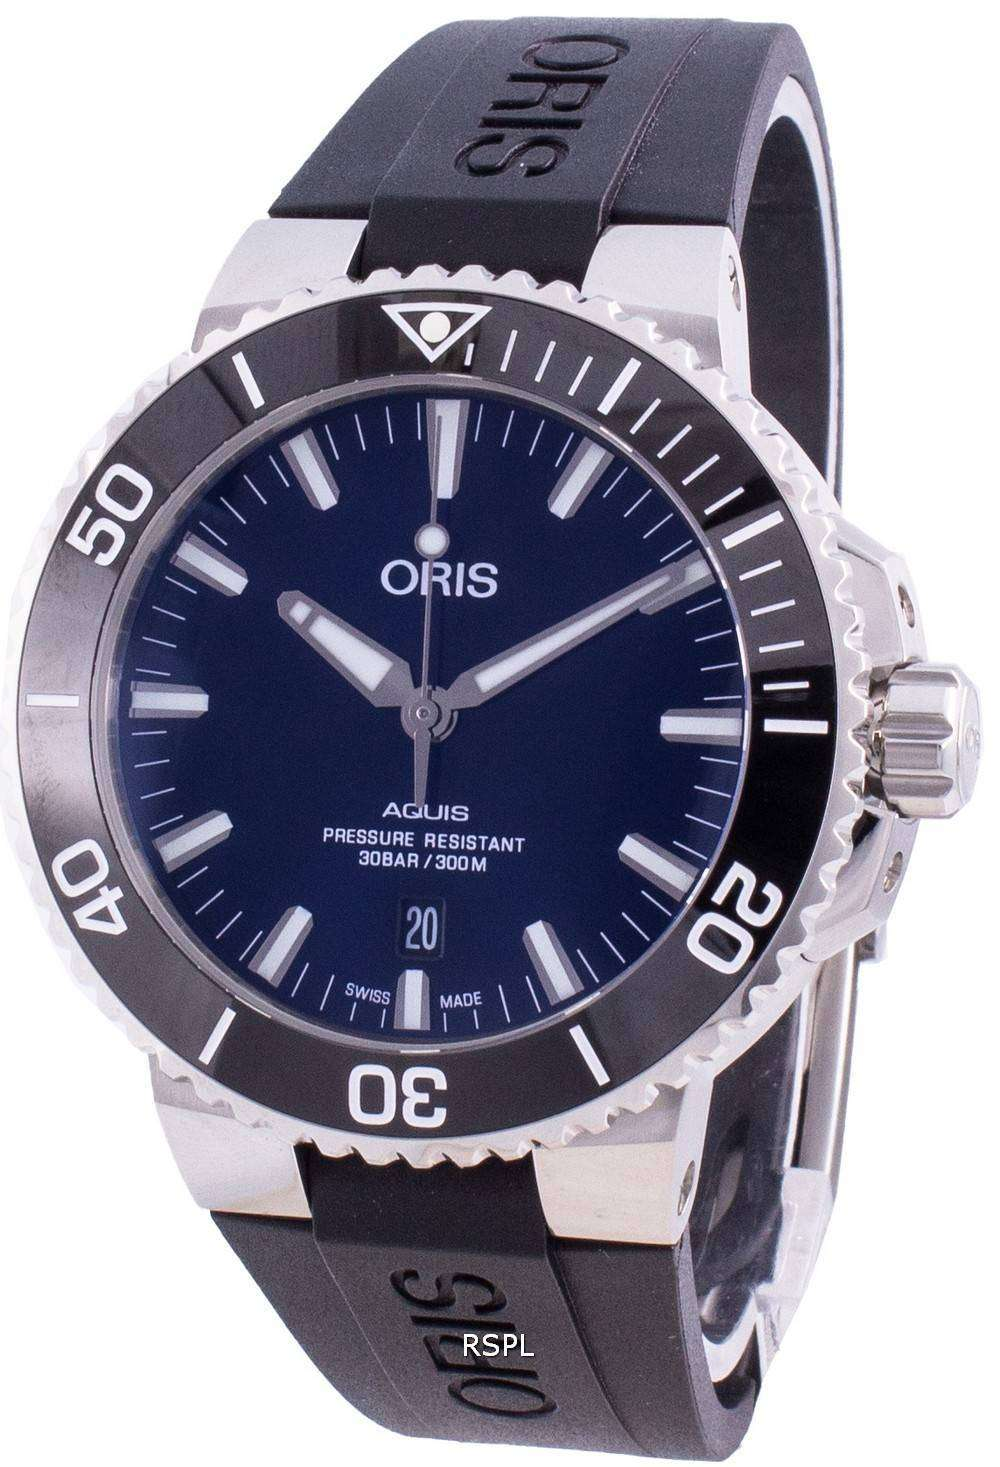 Oris Aquis Date 01-733-7730-4135-07-4-24-64EB Automatic 300M Men's Watch